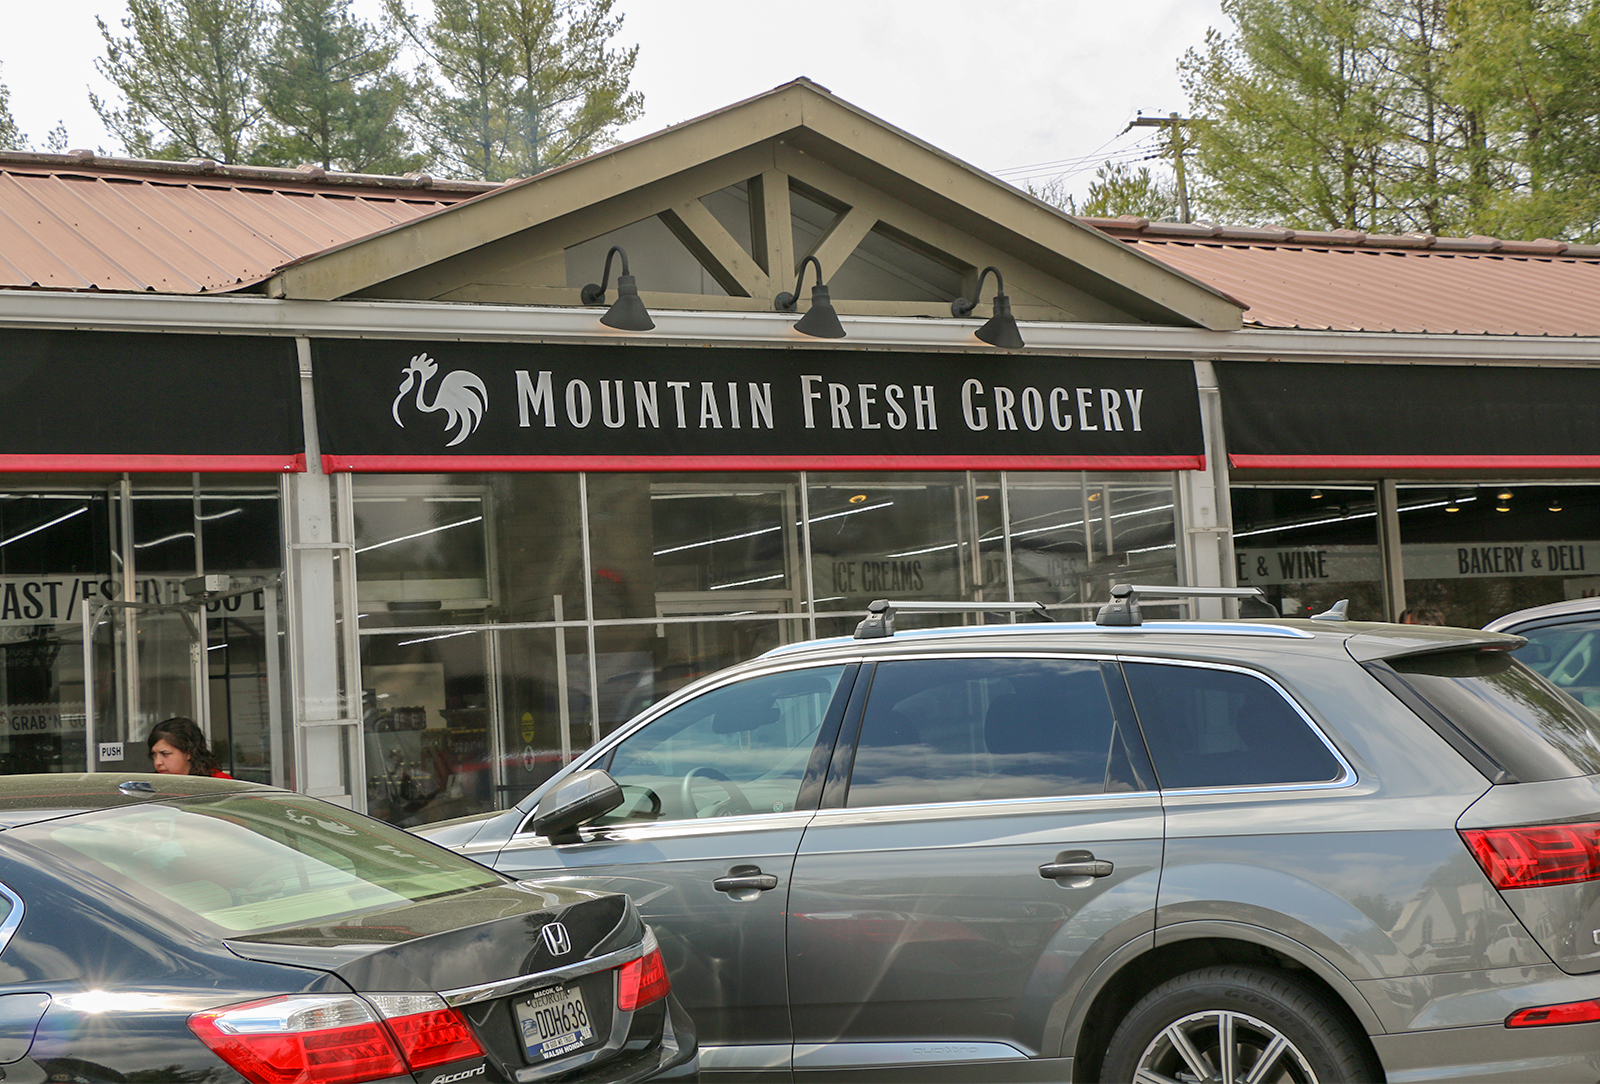 Mountain Fresh Grocery at 521 E. Main Street in Highlands.